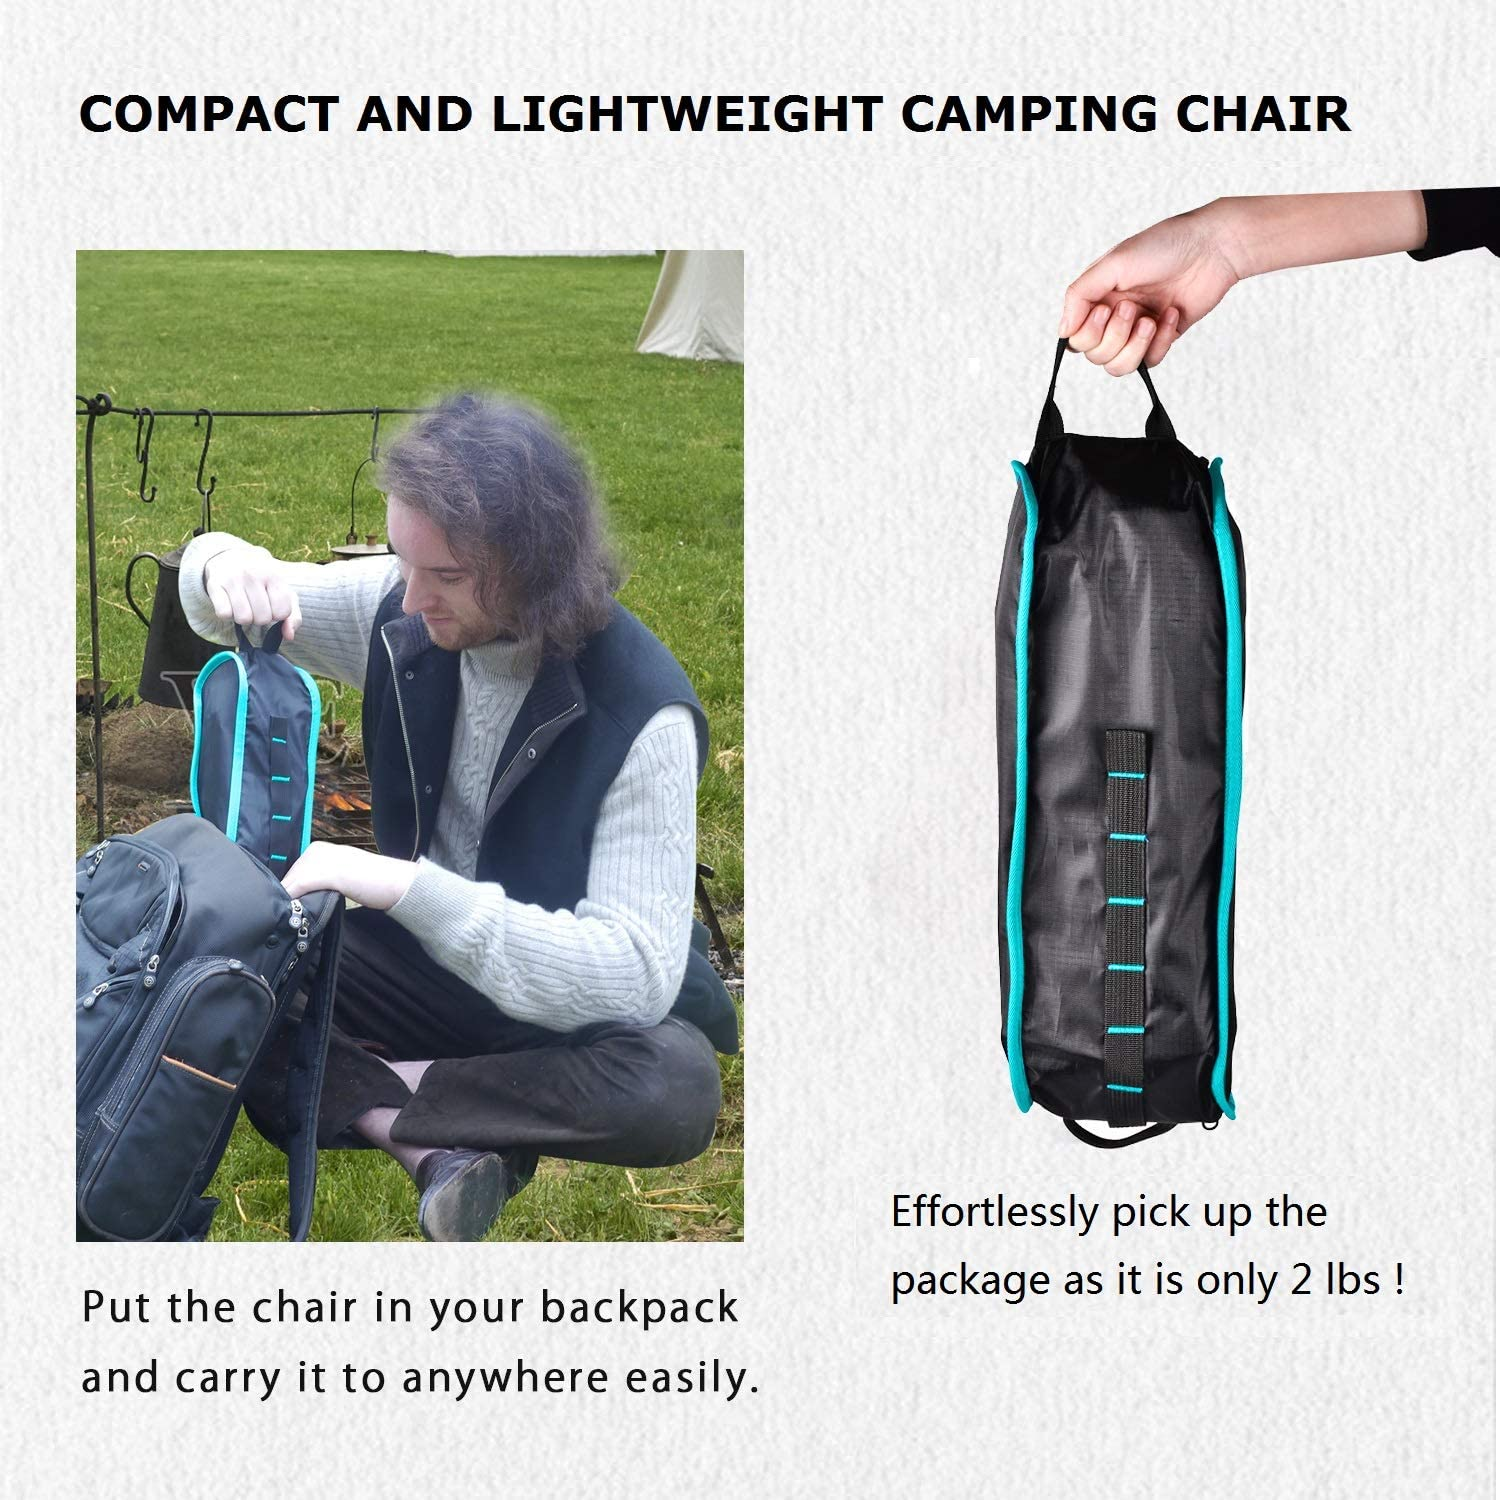 Heavy Duty Aluminum Frame 310lb Capacity Lightweight Camp Chair Compact Folding Camping Chair for Fishing Picnic Hiking Grepatio Backpacking Camping Chair